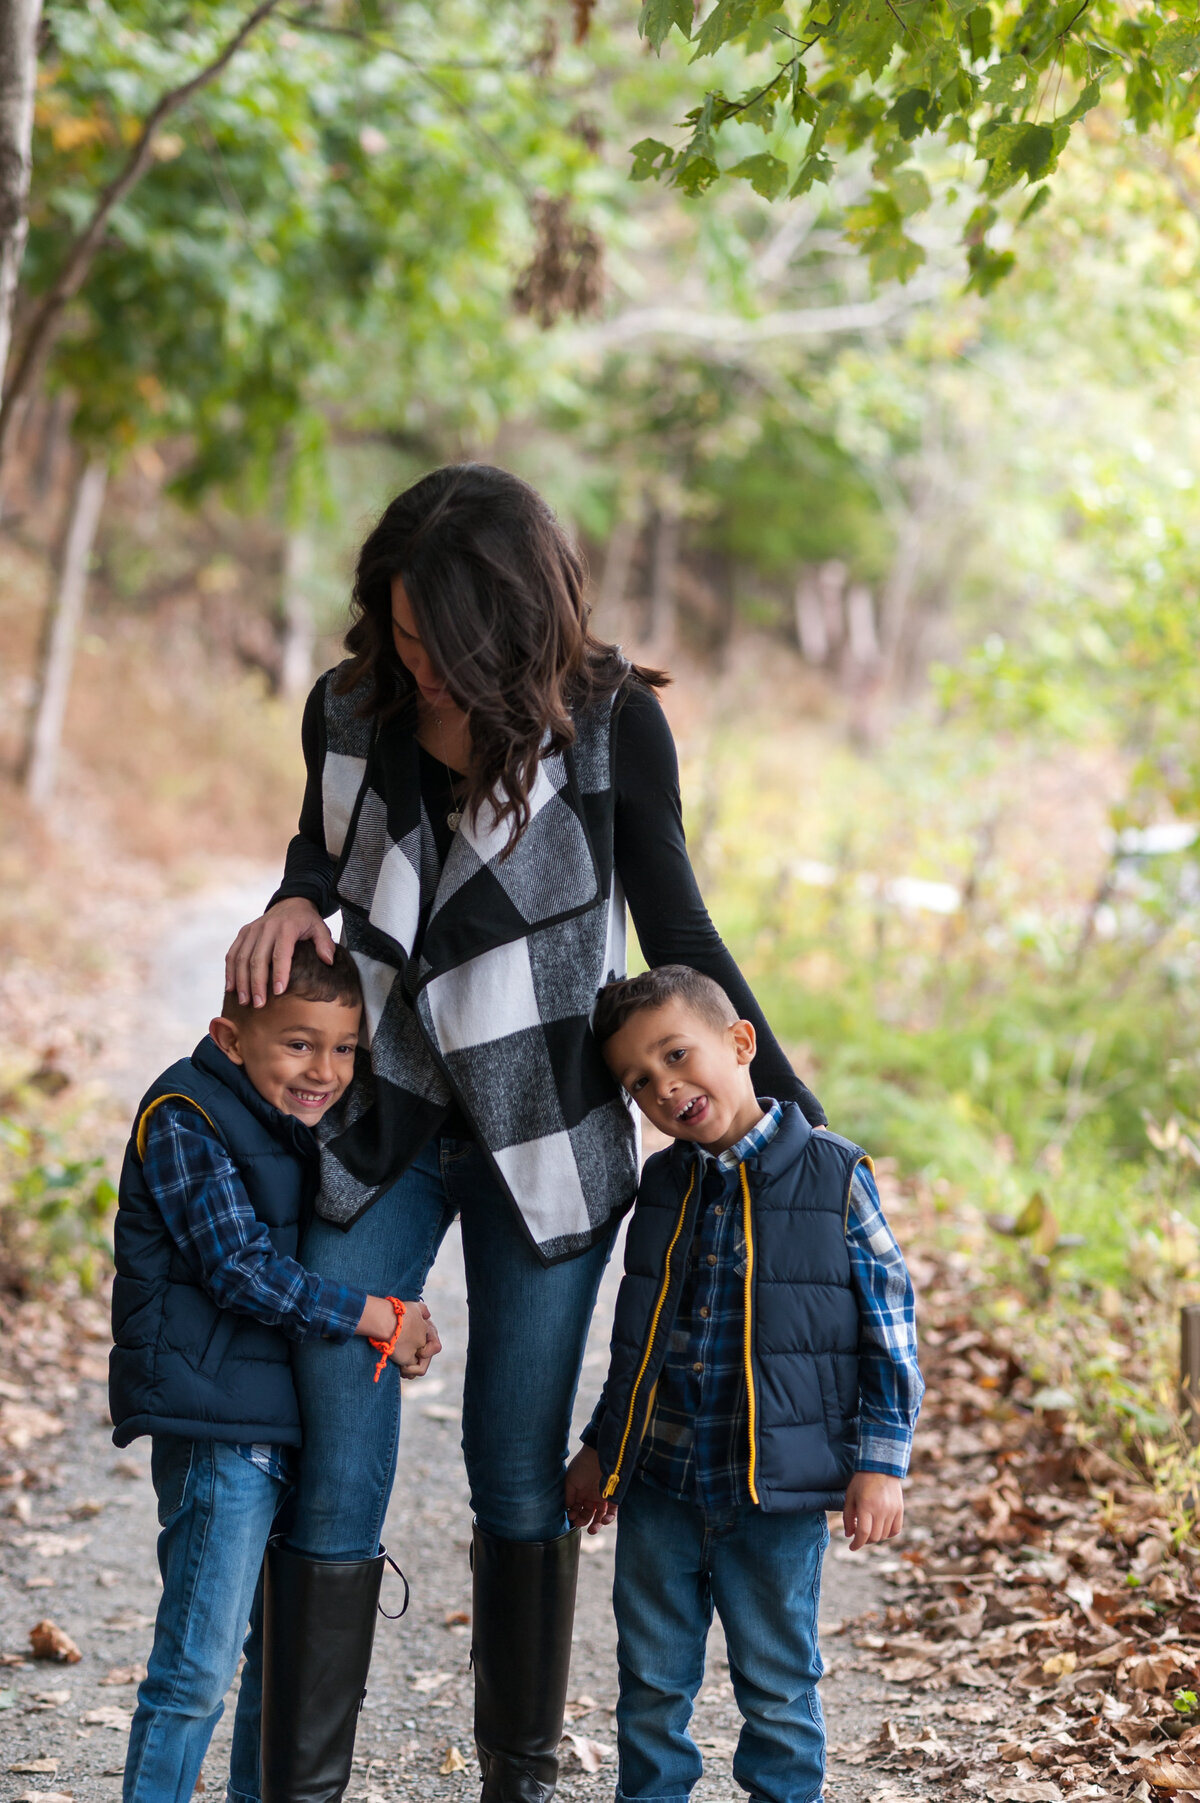 Wendy_Zook_Family_Photography_Lacayo_6